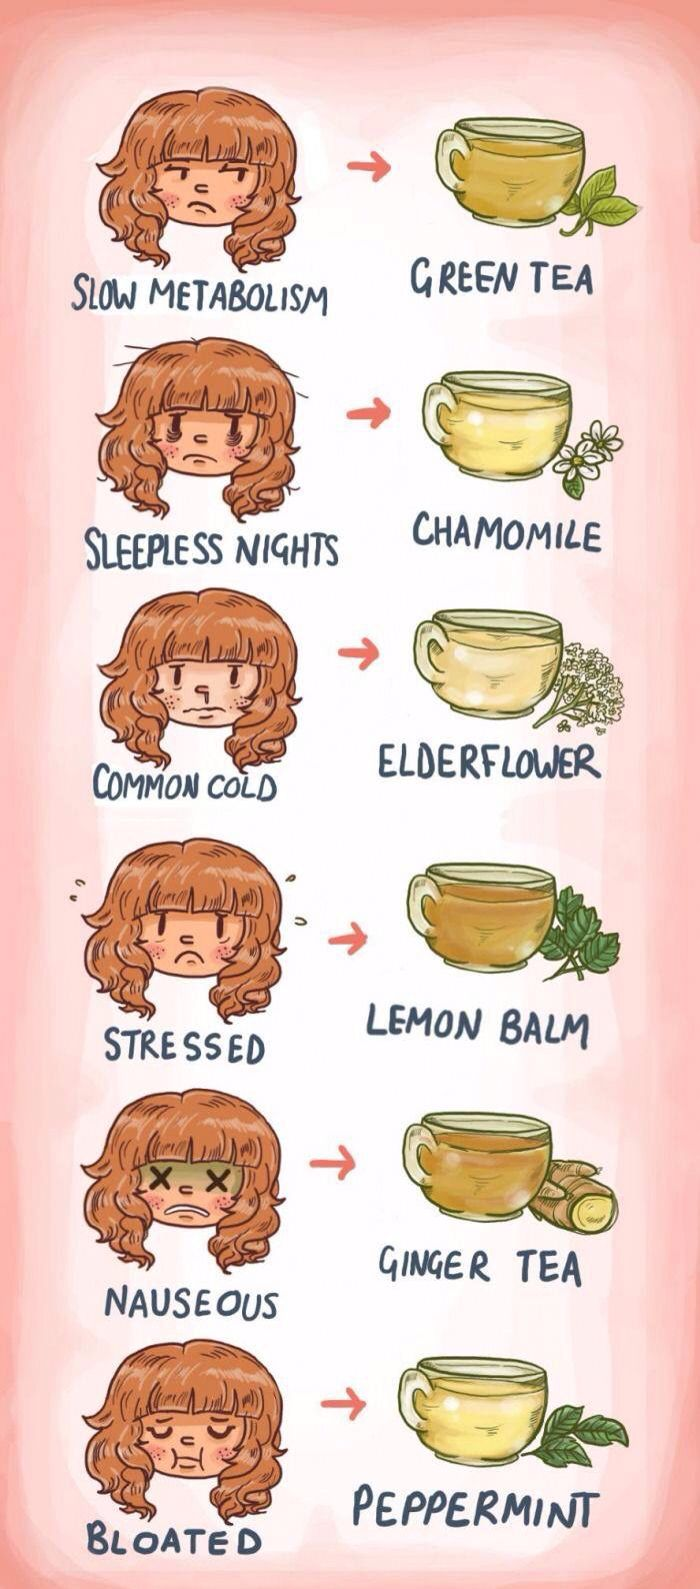 What tea to drink for nausea, sleeplessness, better metabolism etc